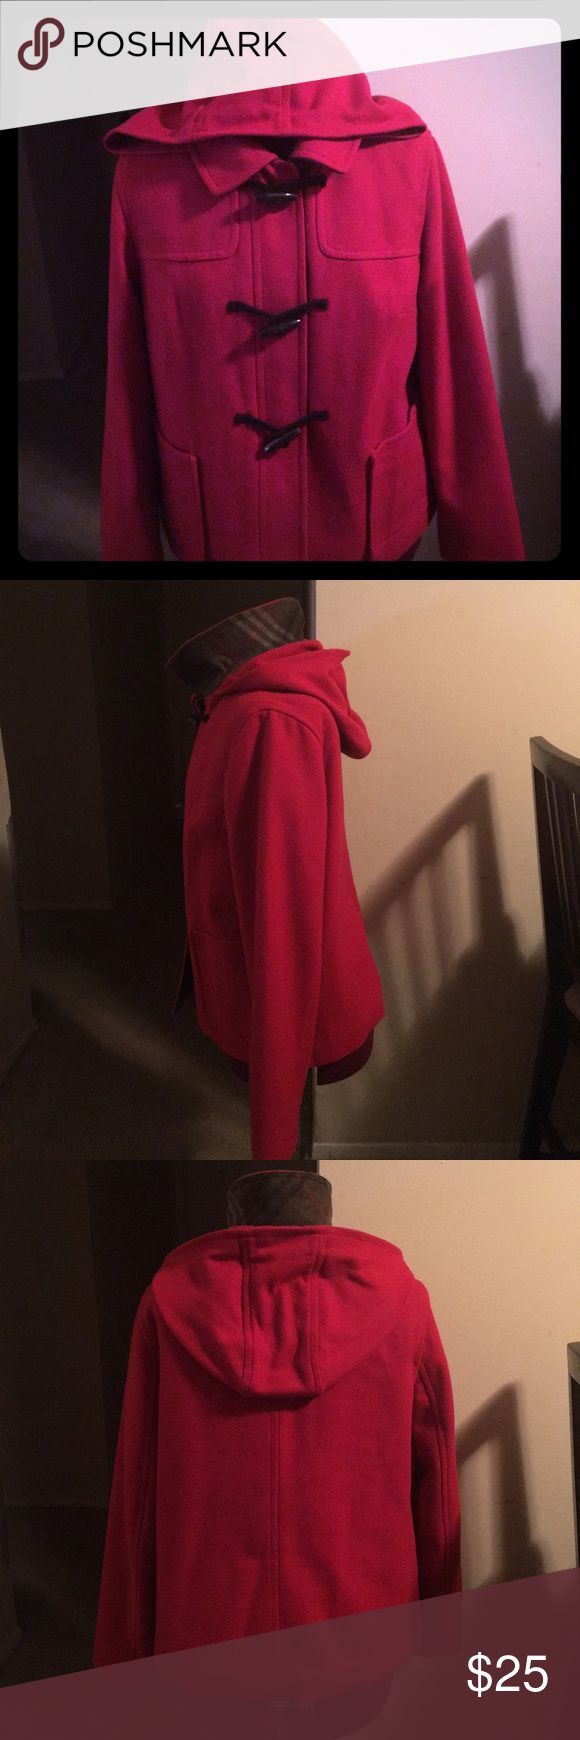 Old Navy Red Toggle Coat - $20 Old Navy Red Wool Toggle Coat with red lining  - $20, Size L Old Navy Jackets & Coats Pea Coats